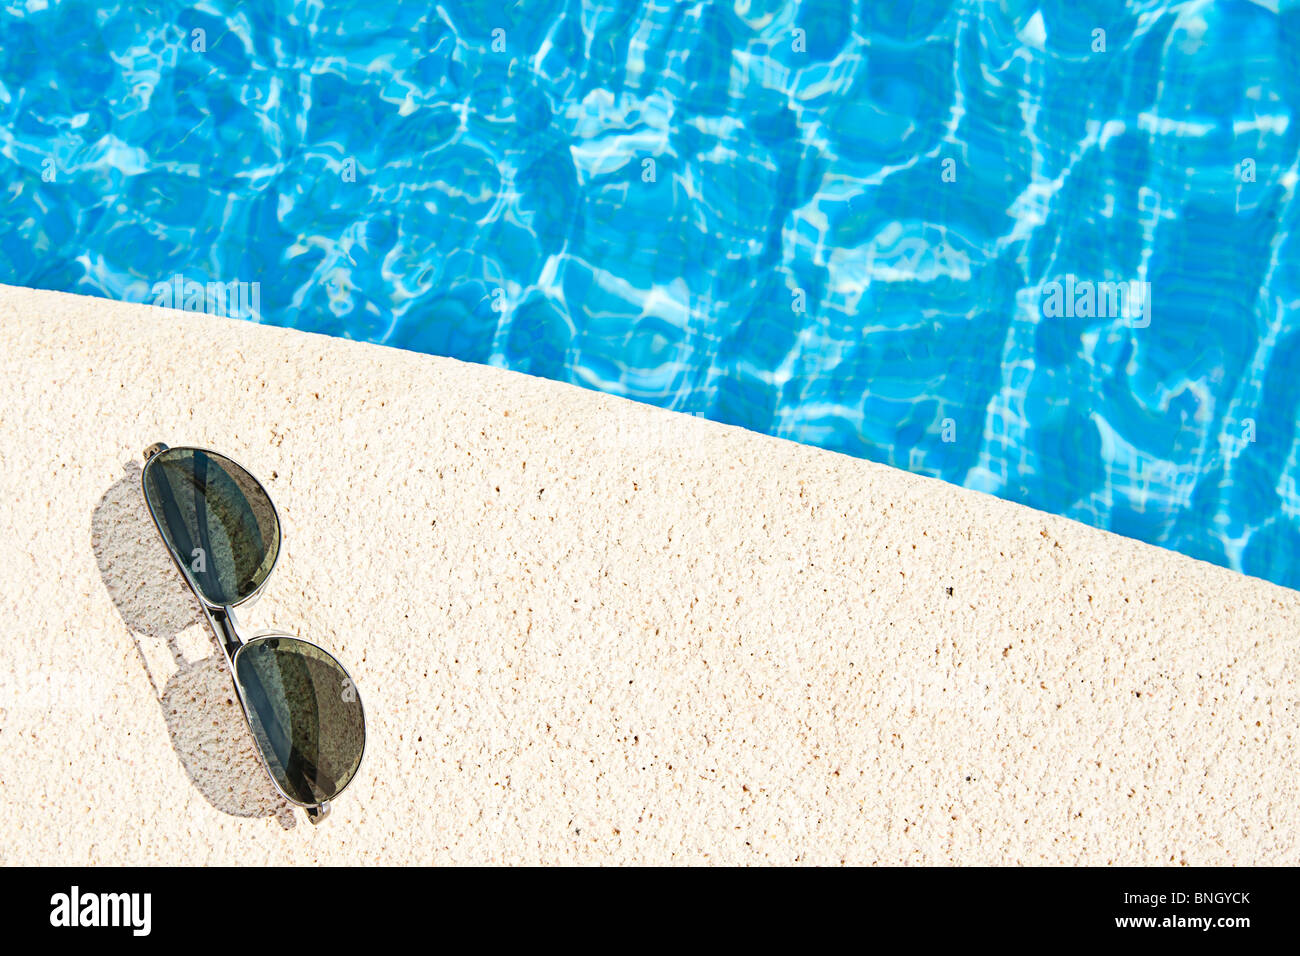 Shot of Sunglasses next to the Swimming Pool - Stock Image